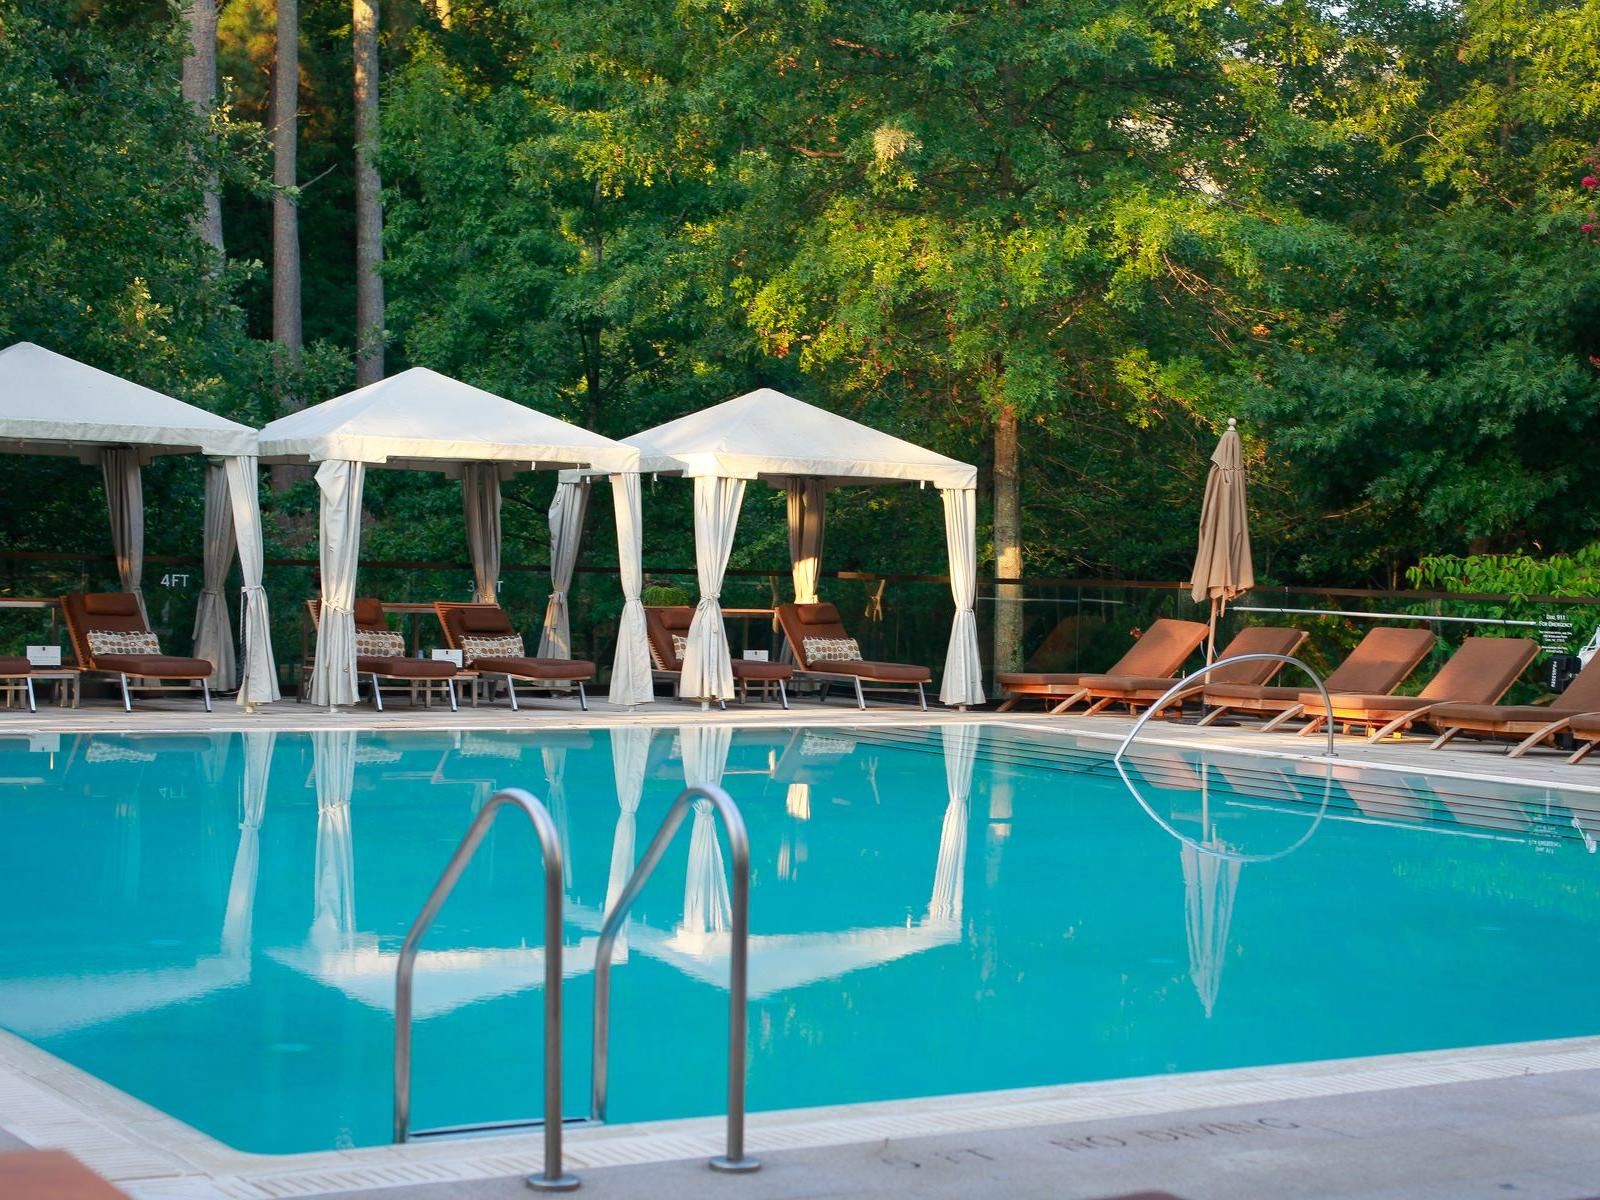 pool with cabana and chairs